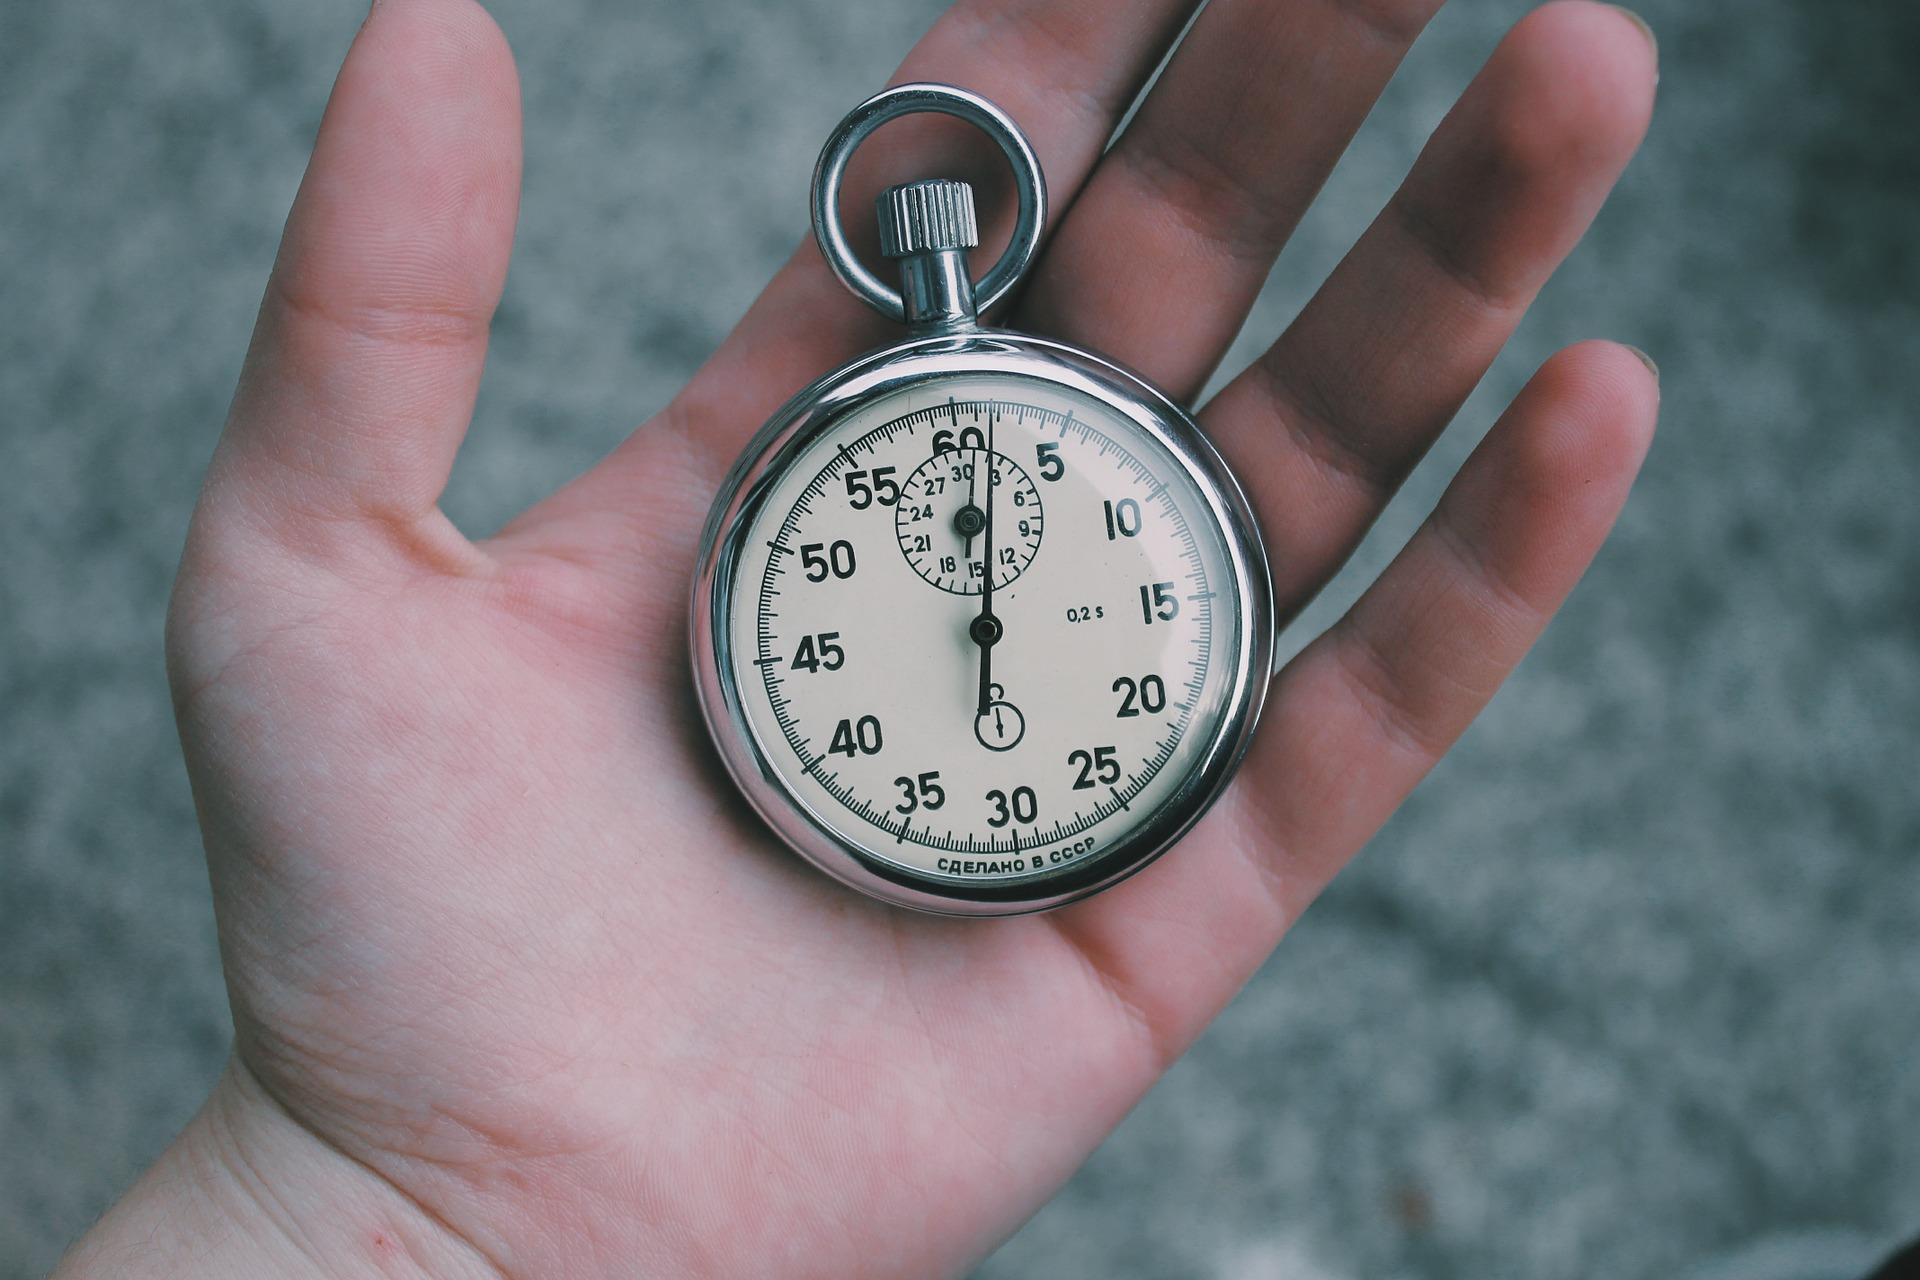 hand holding a pocket watch showing the time